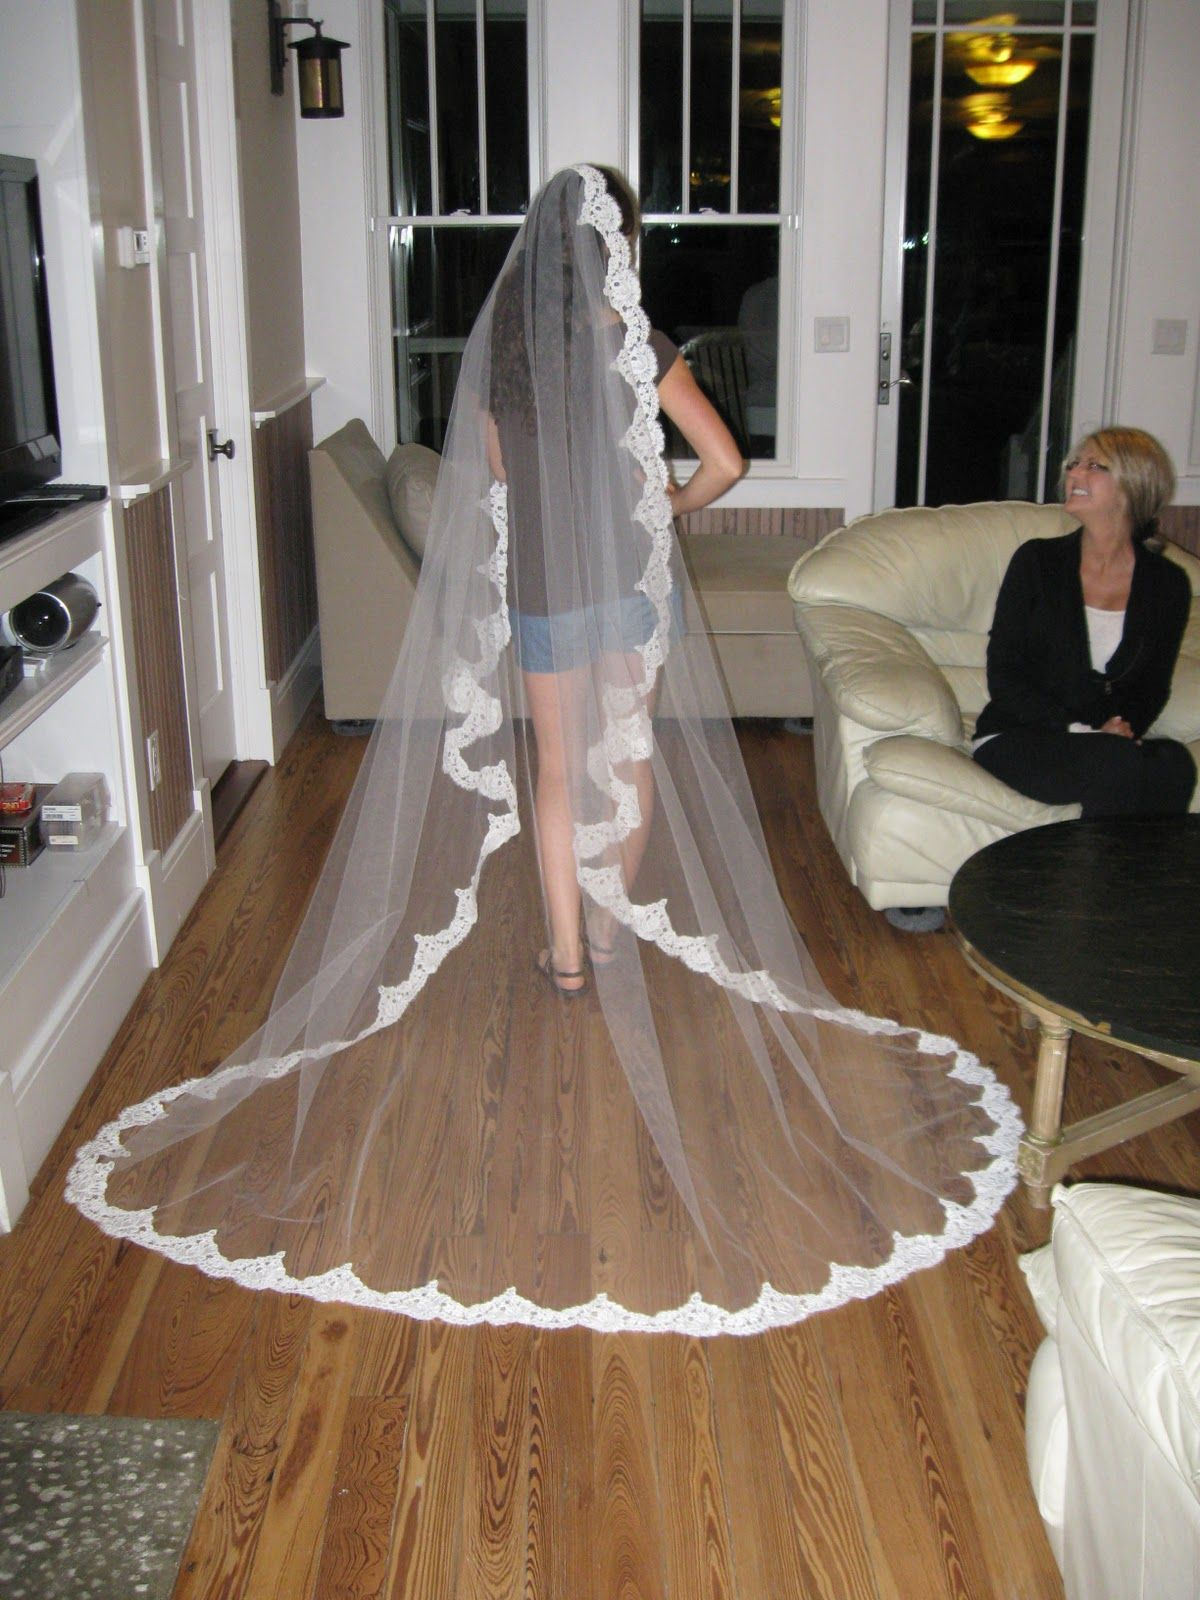 Bean In Love Tulle Lace And Two Sisters Diy Wedding Veil Instructions On How To Cut The